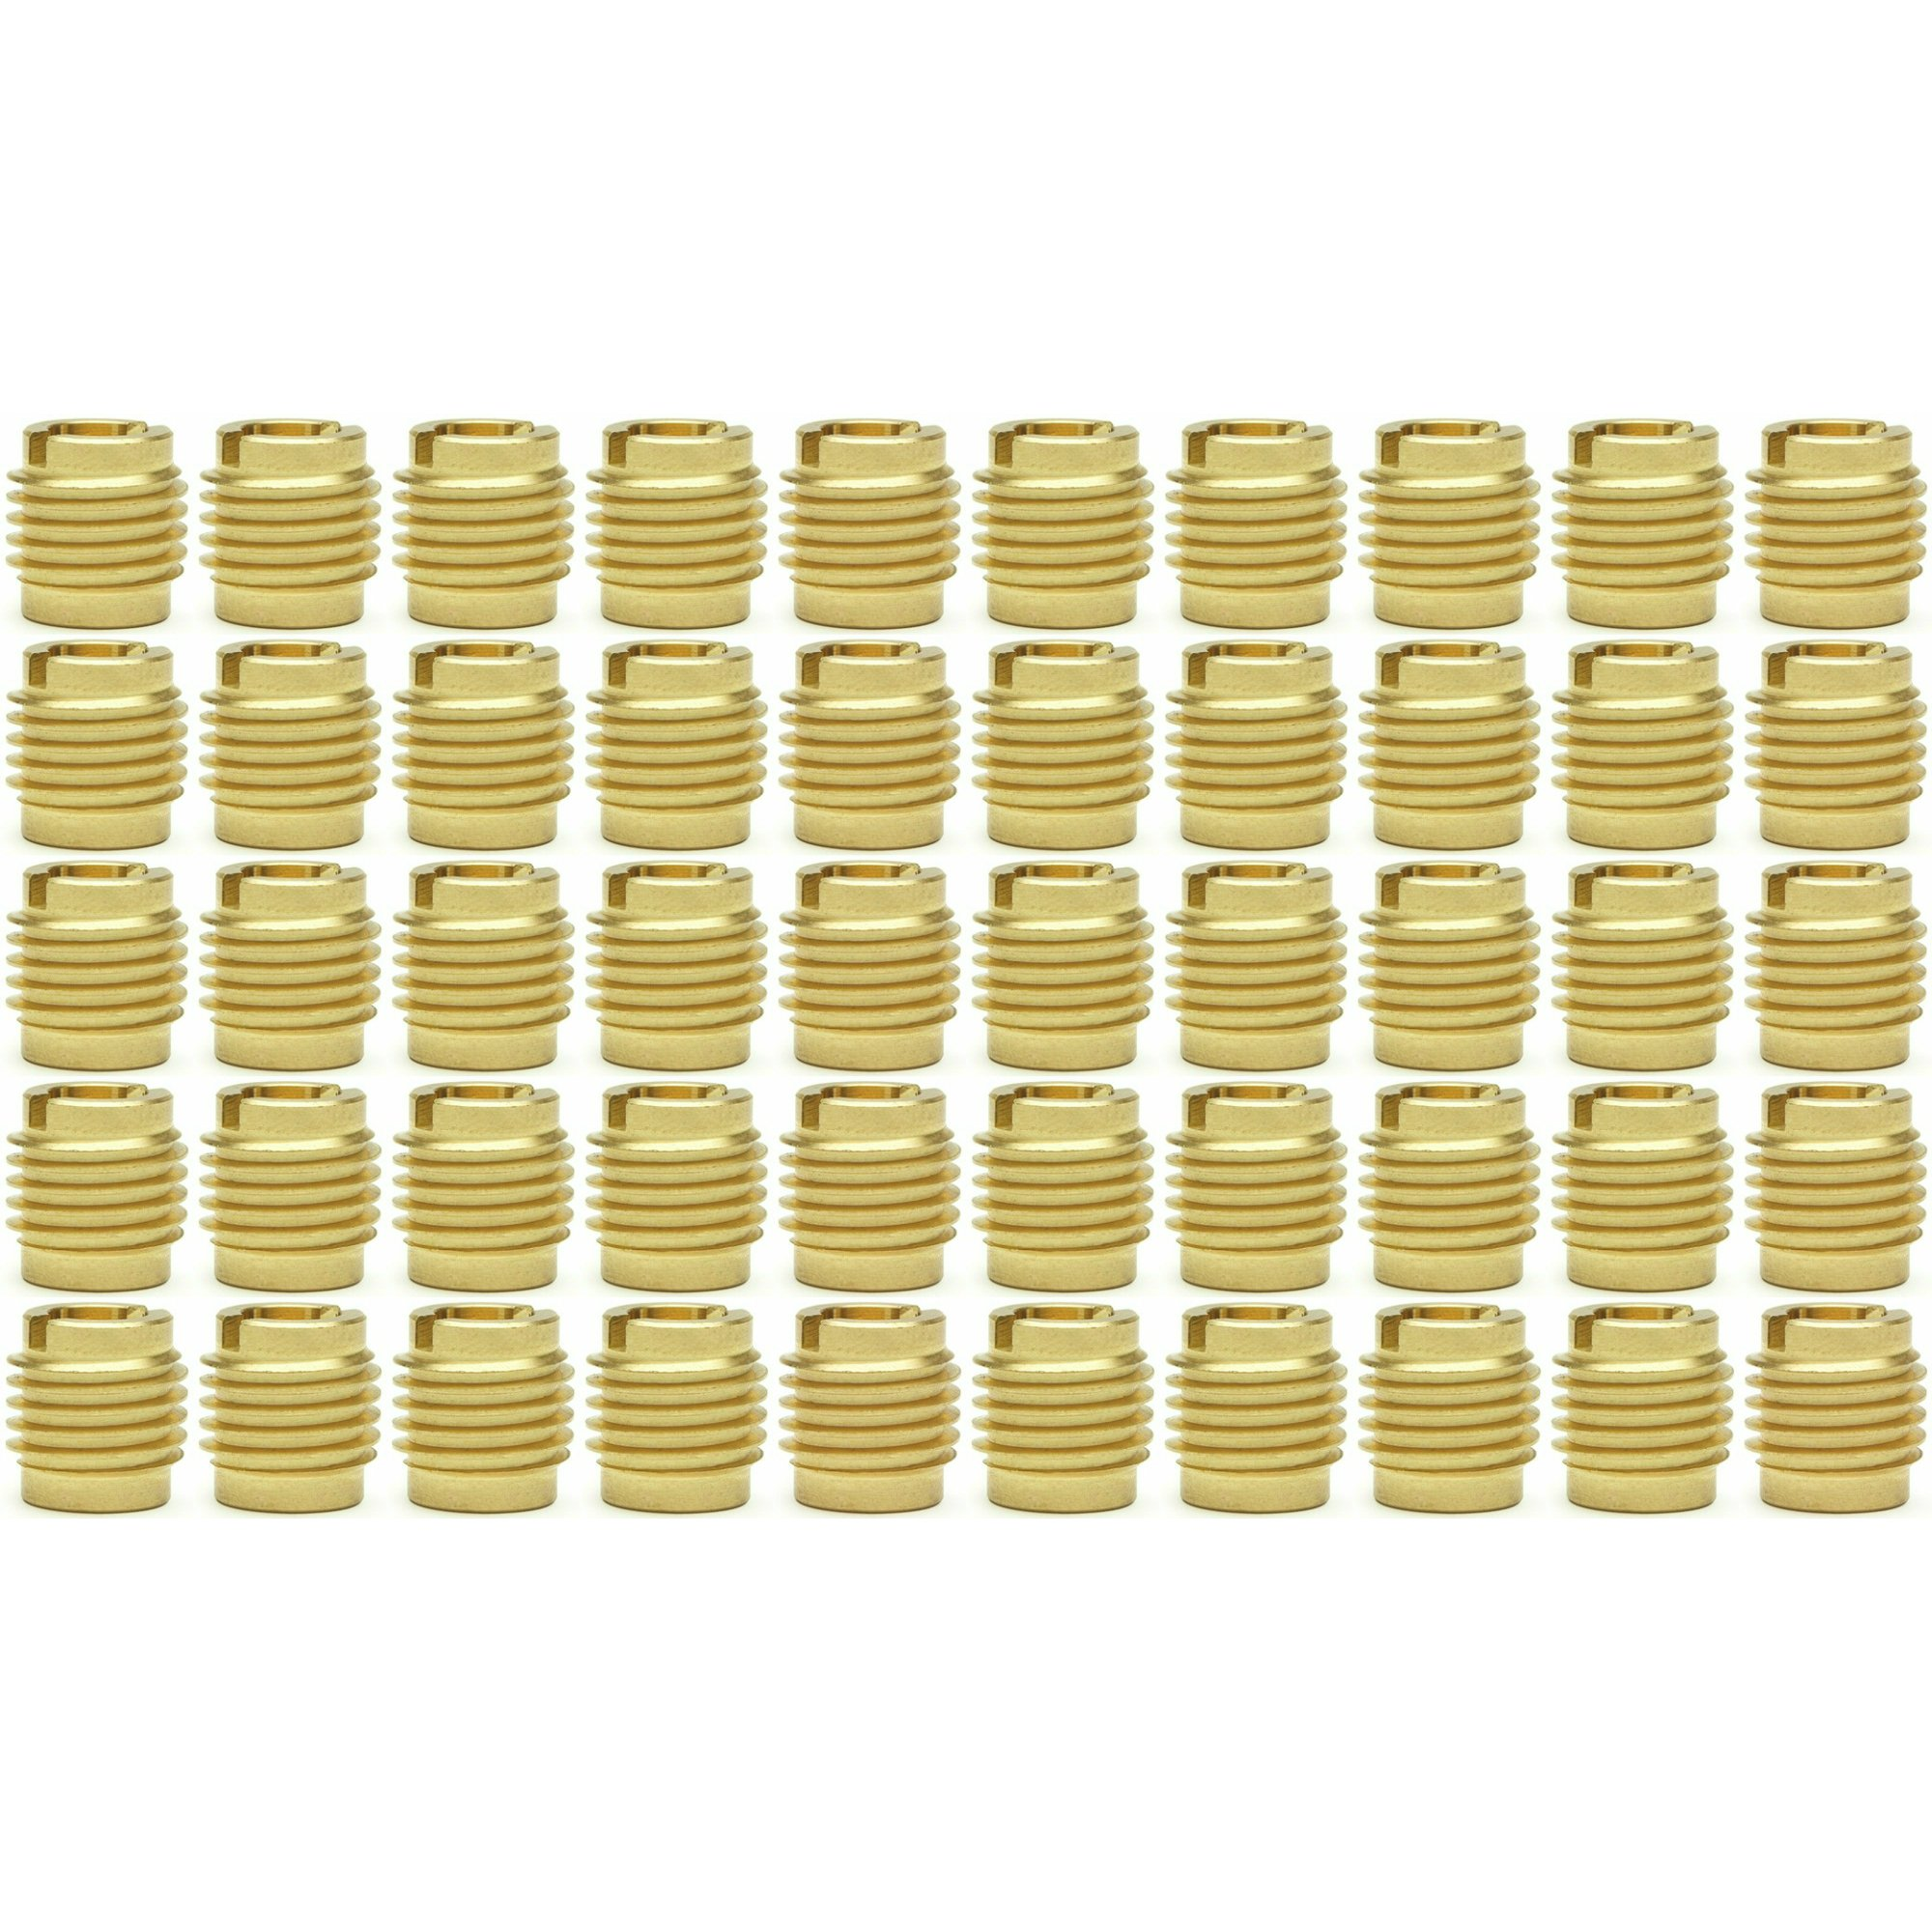 """Fifty (50) #10-24 Brass Threaded Inserts For Wood 